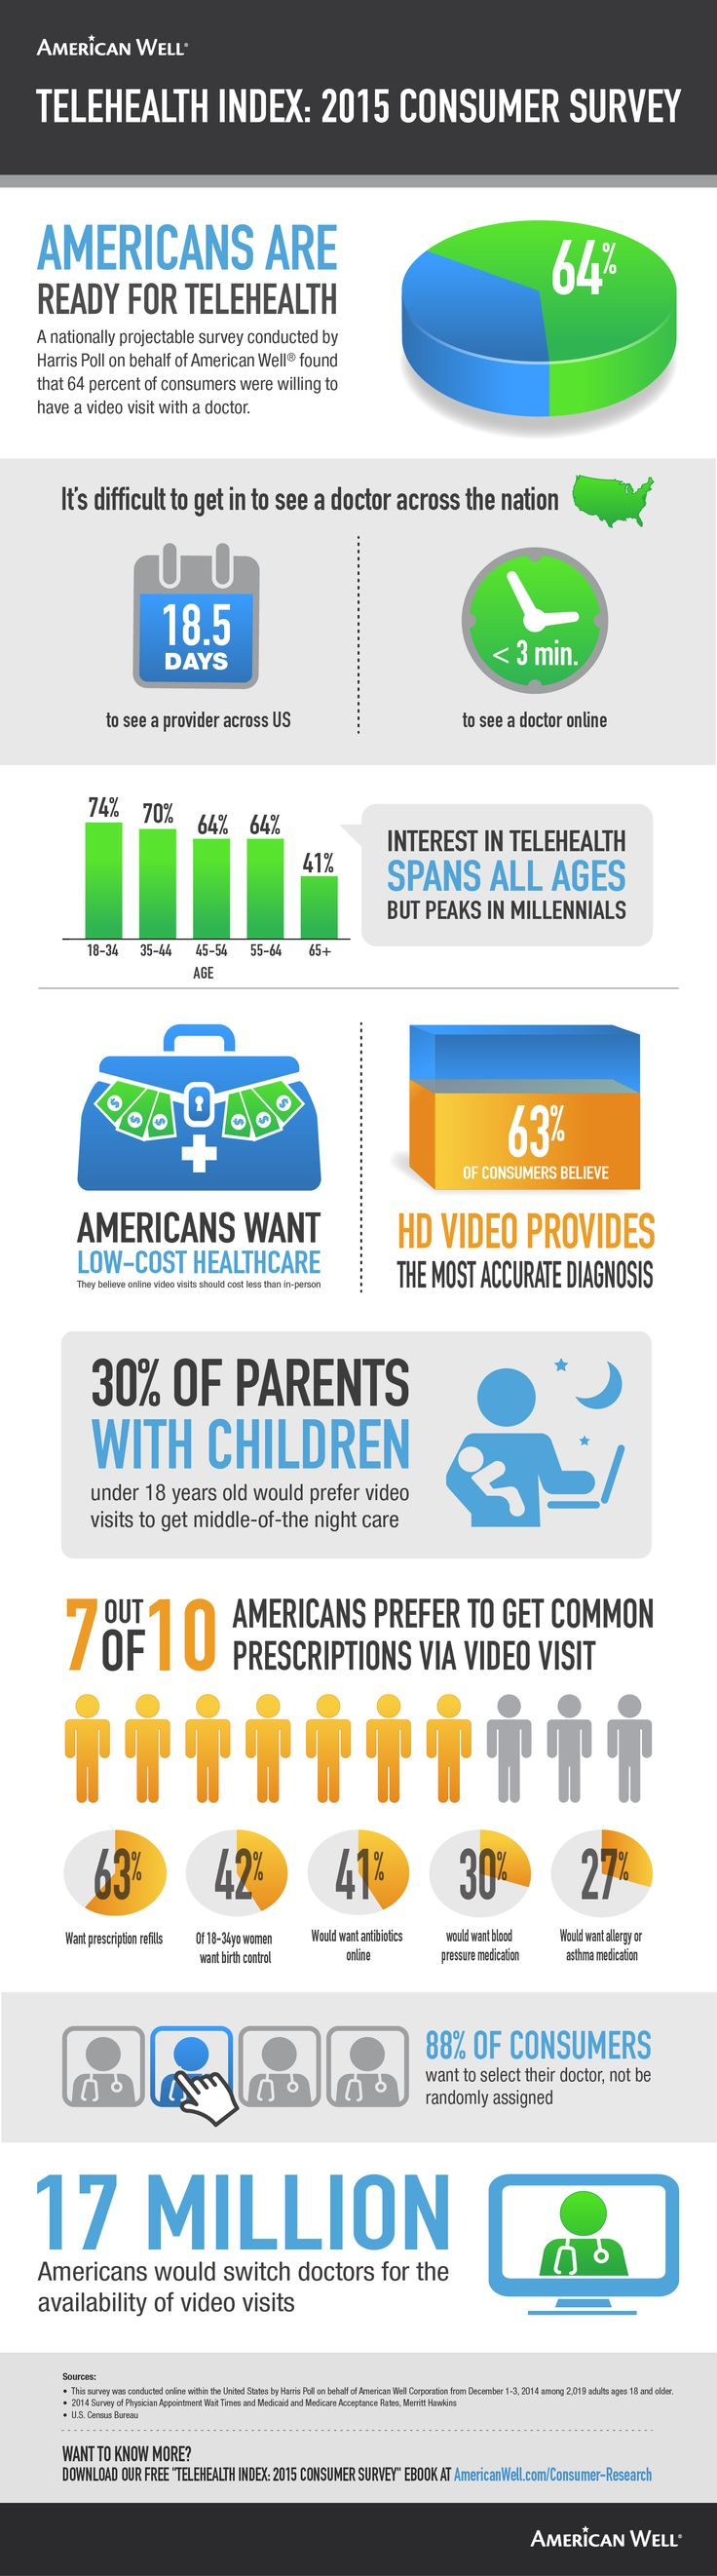 TeleHealth Index: 2015 Consumer Survey infographic drills down the survey results conducted by Harris on behalf of American Well including details on consumer perceptions of #telehealth. via @ACO_News #HealthCare #RichardAKimballjr http://bit.ly/1zzPrVY